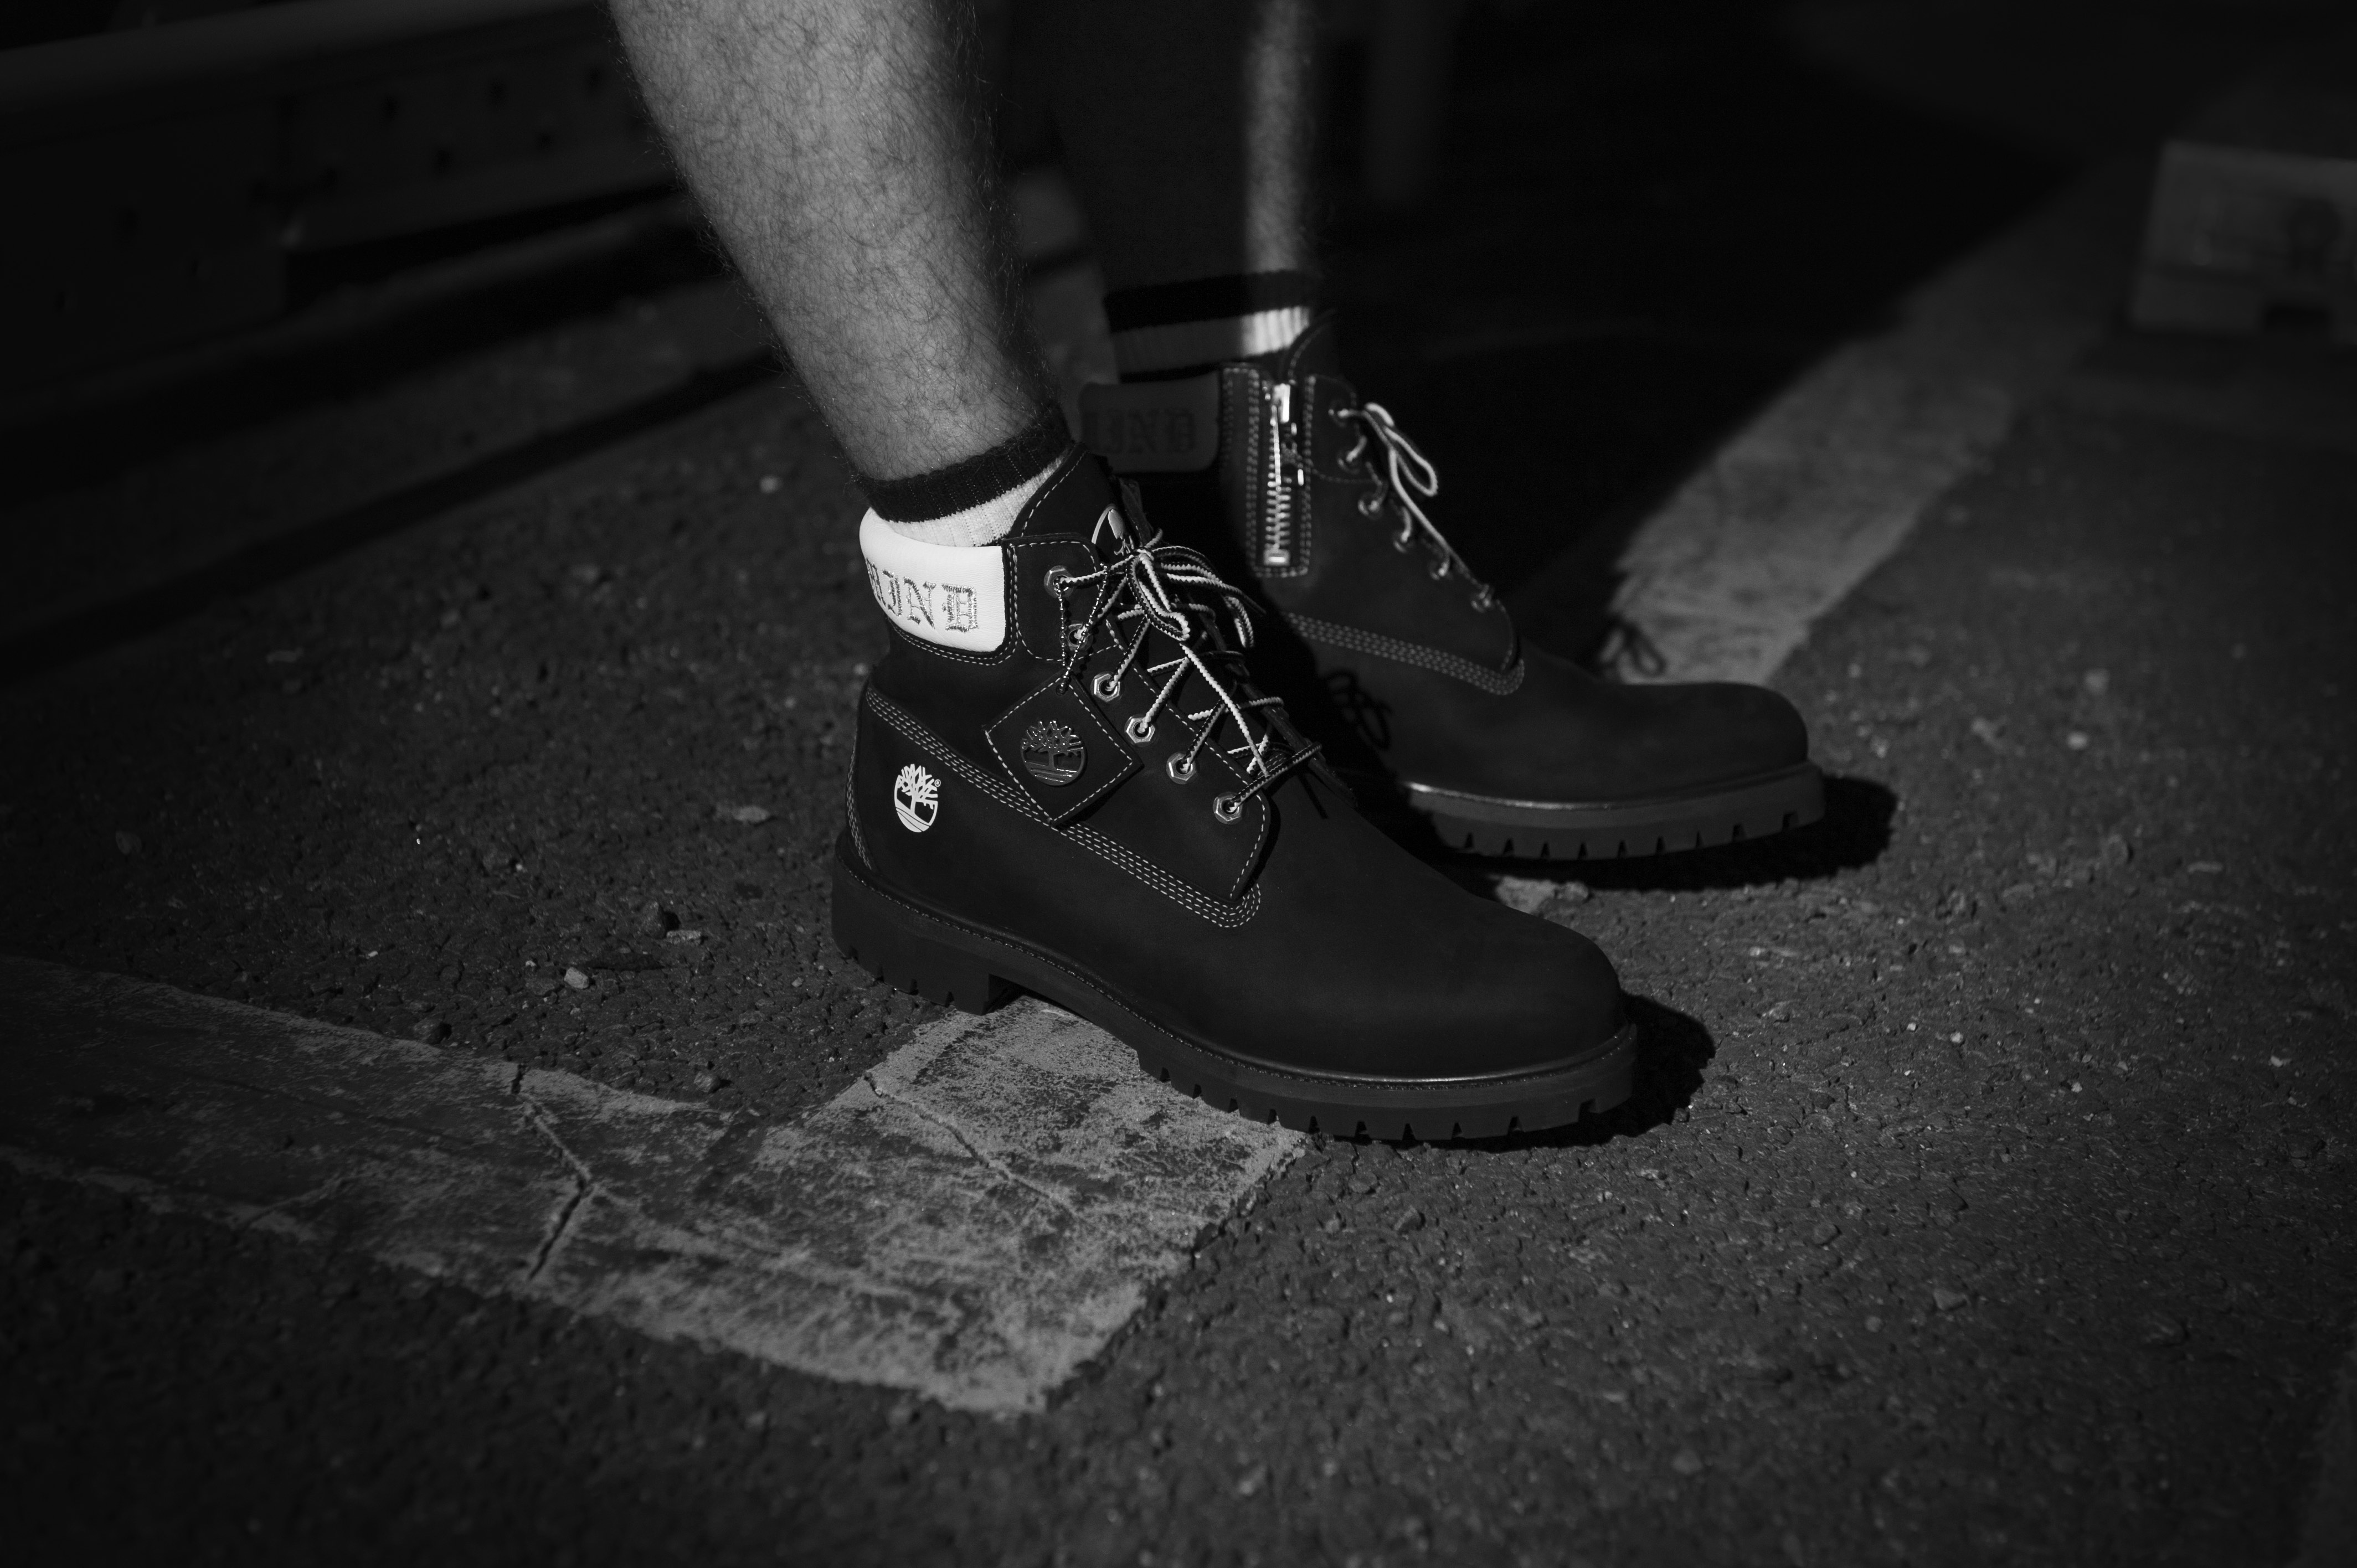 bba8a558a6c1 The Iconic Timberland 6-Inch Boot Gets A Remix From MASTERMIND - MASSES